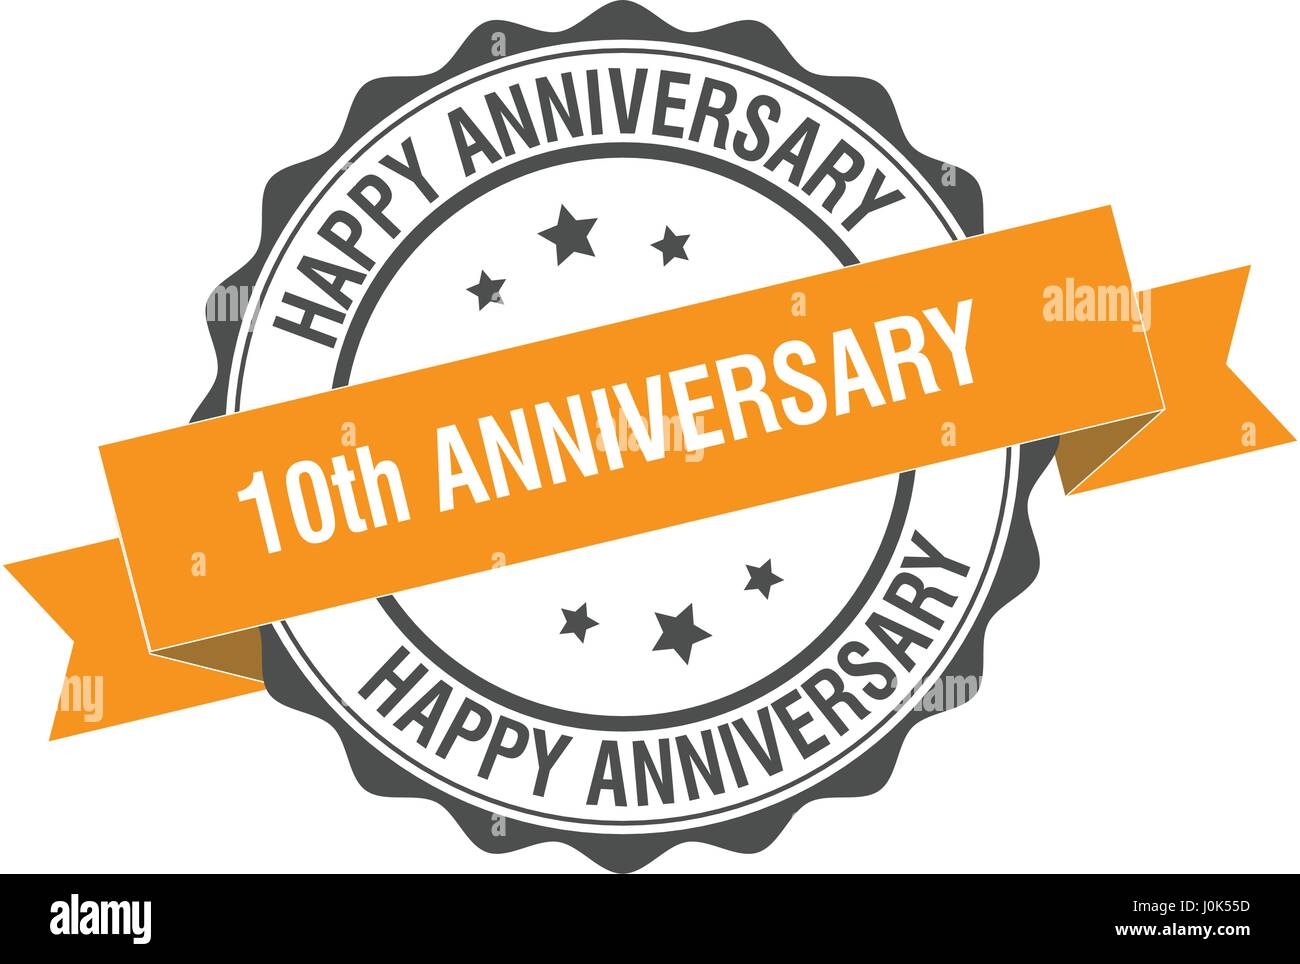 10th anniversary stamp illustration - Stock Vector